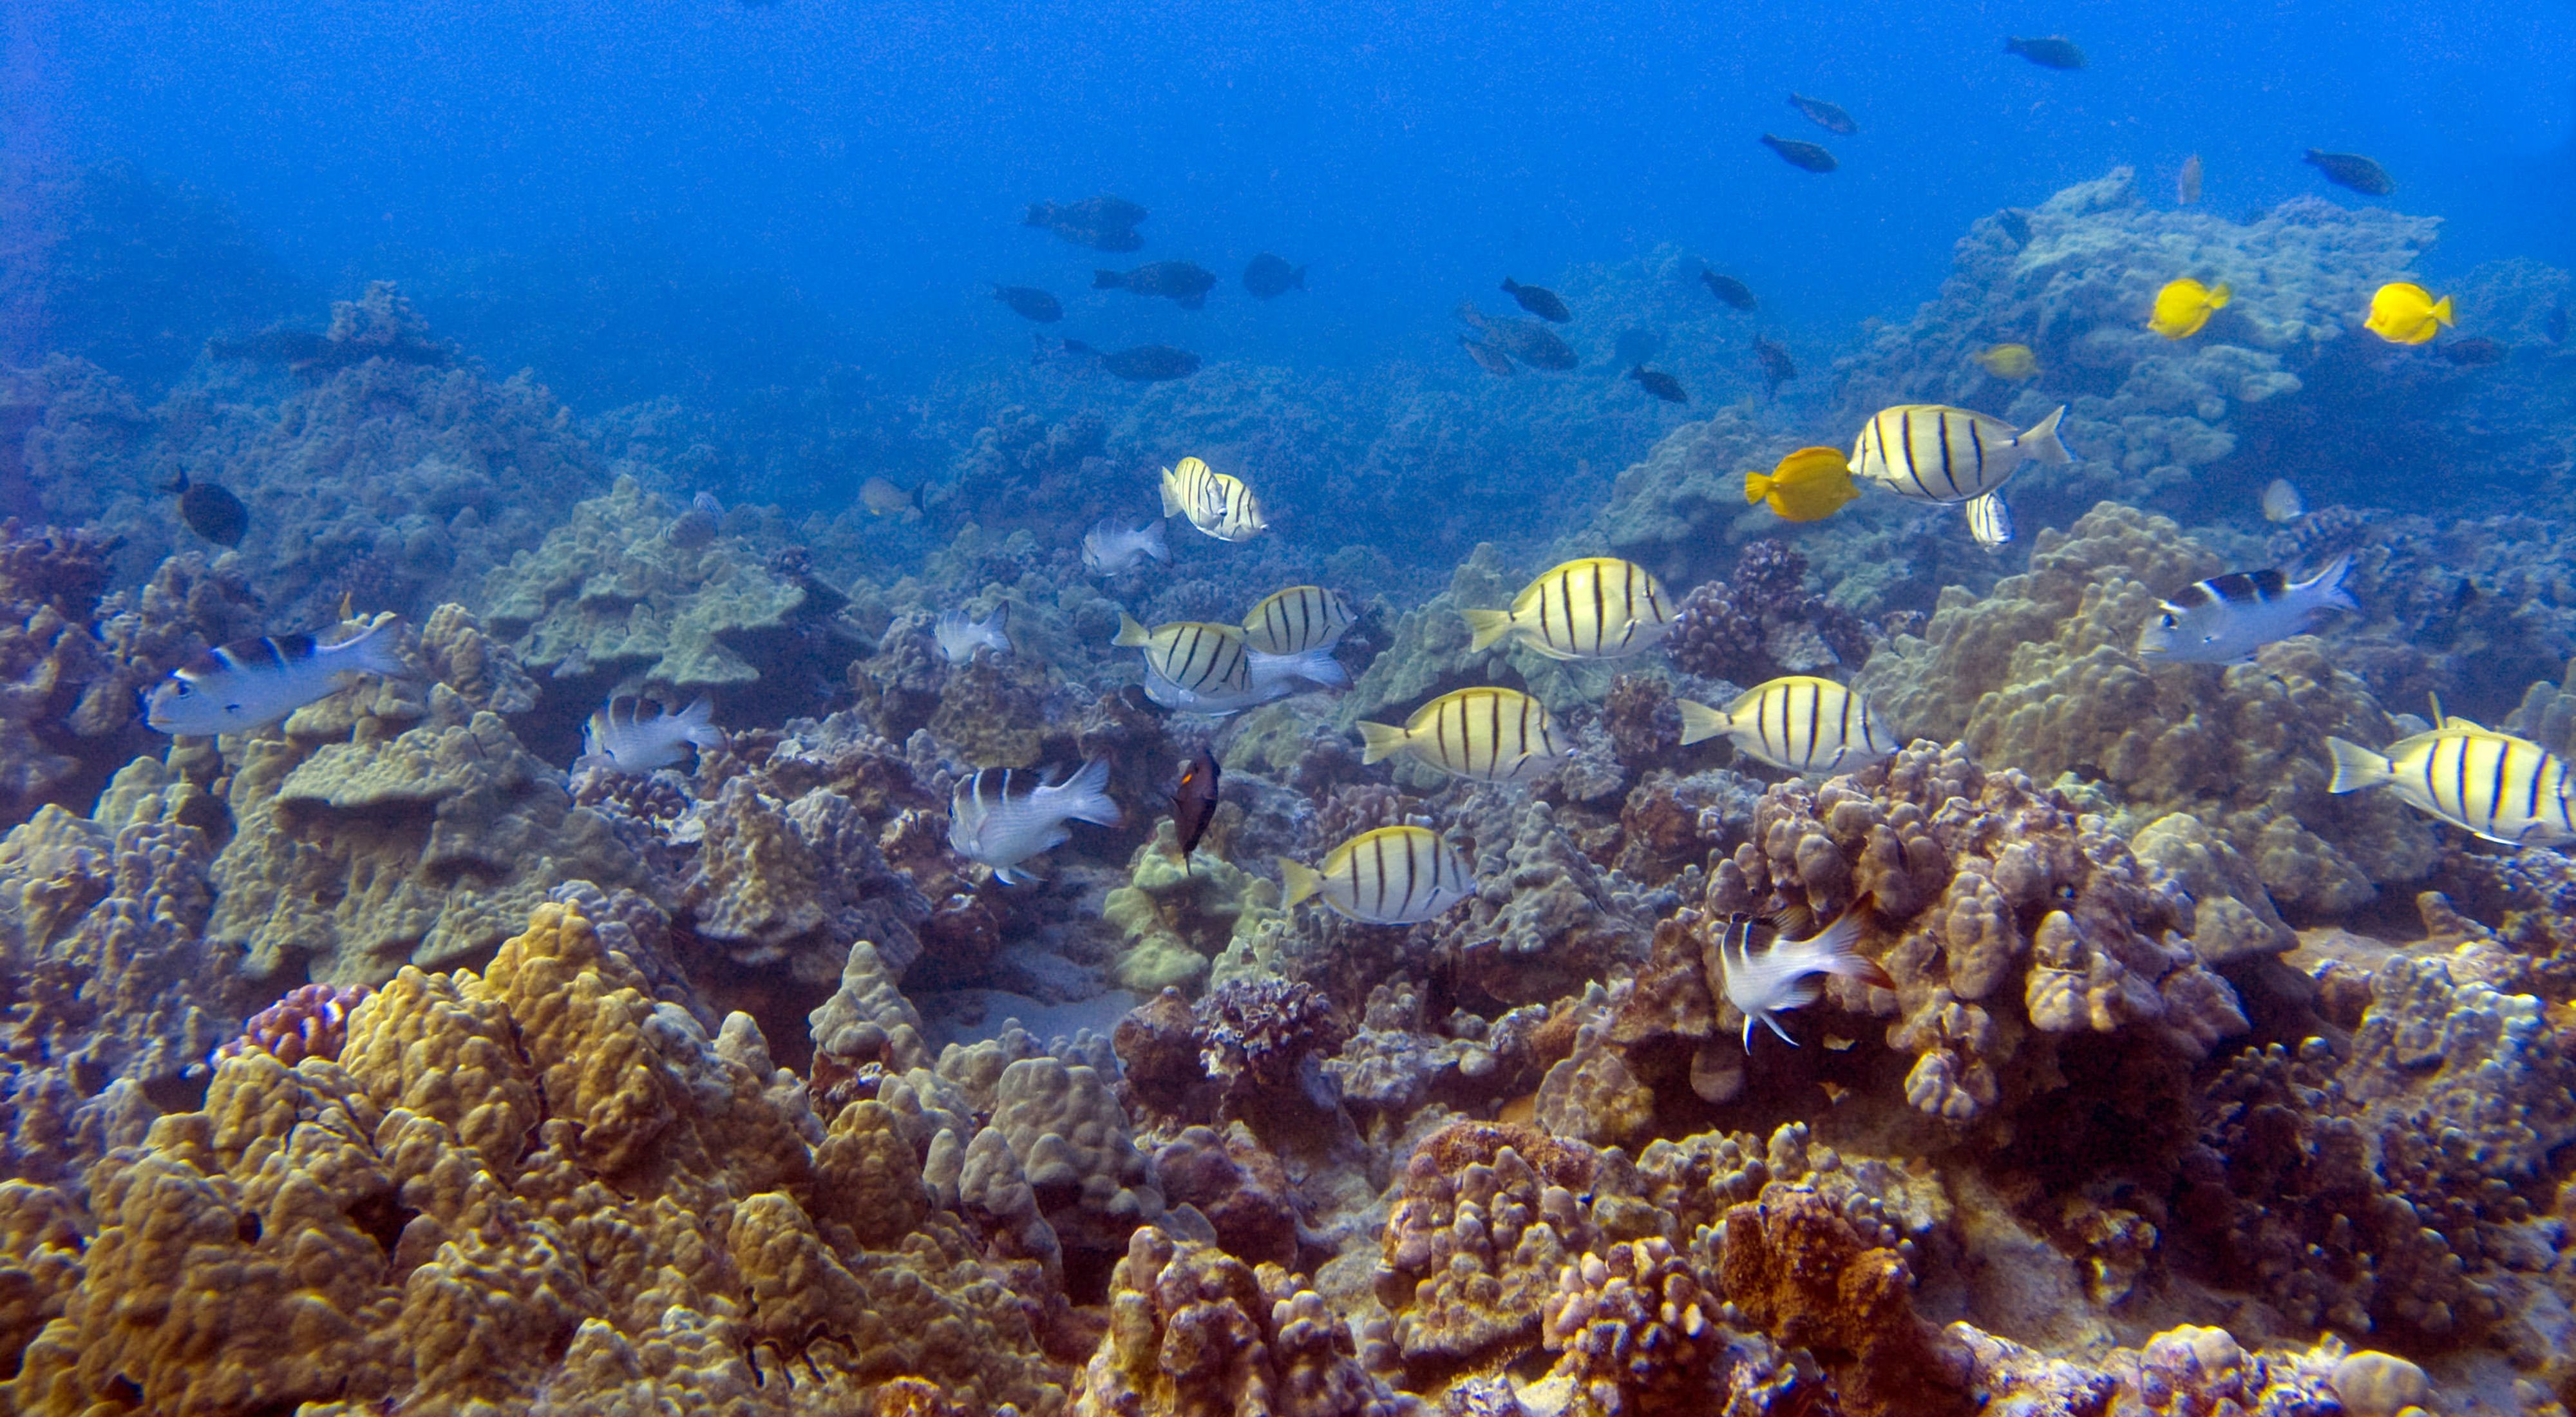 Coral reefs and fishes at Ahihi Kinau Natural Area Reserve on Maui.